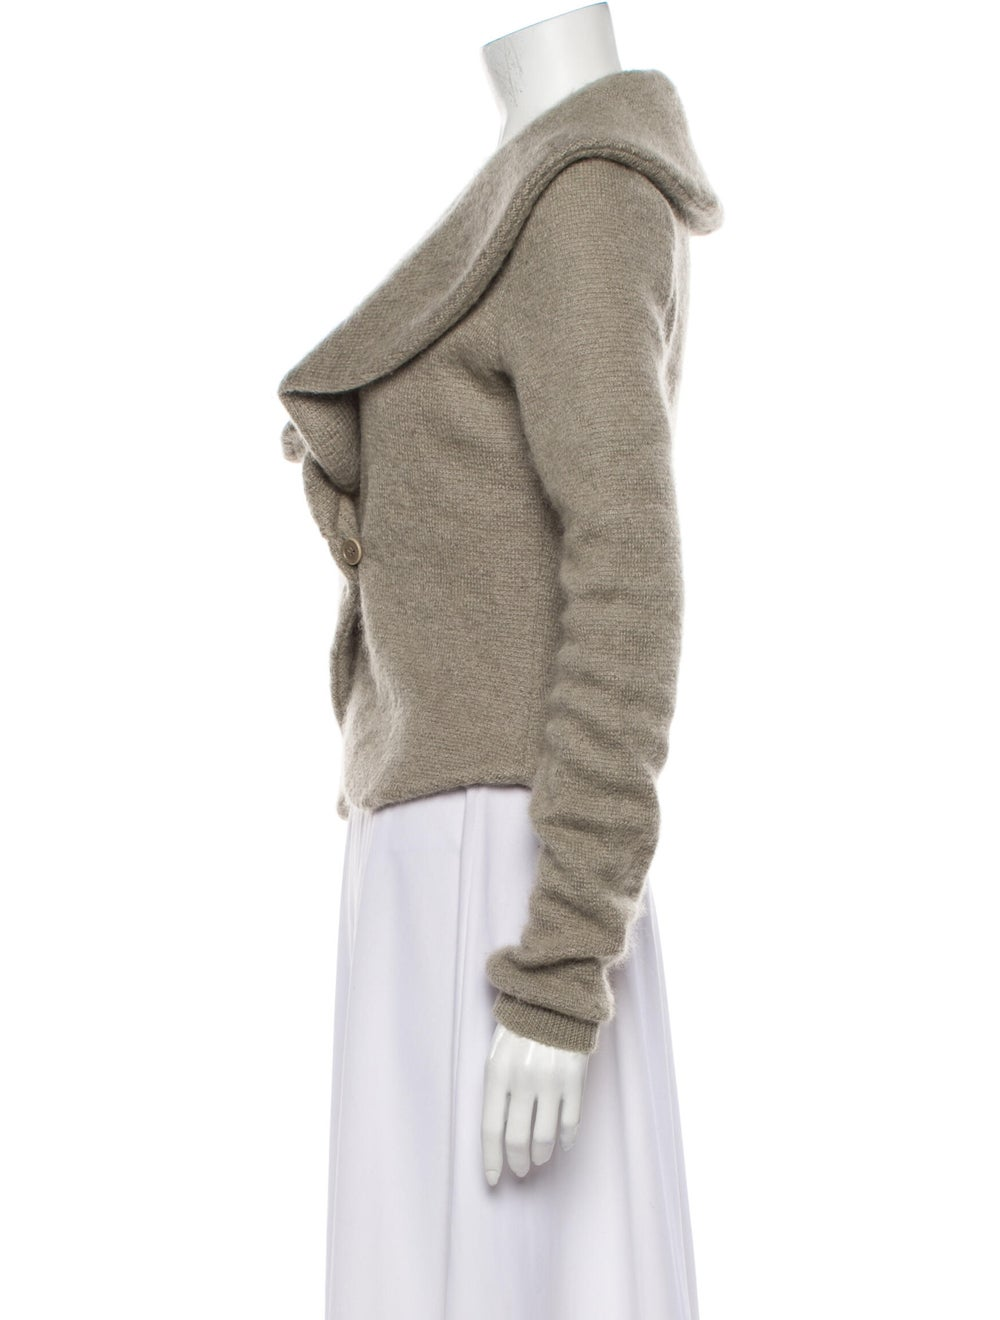 Givenchy Mohair Sweater - image 2